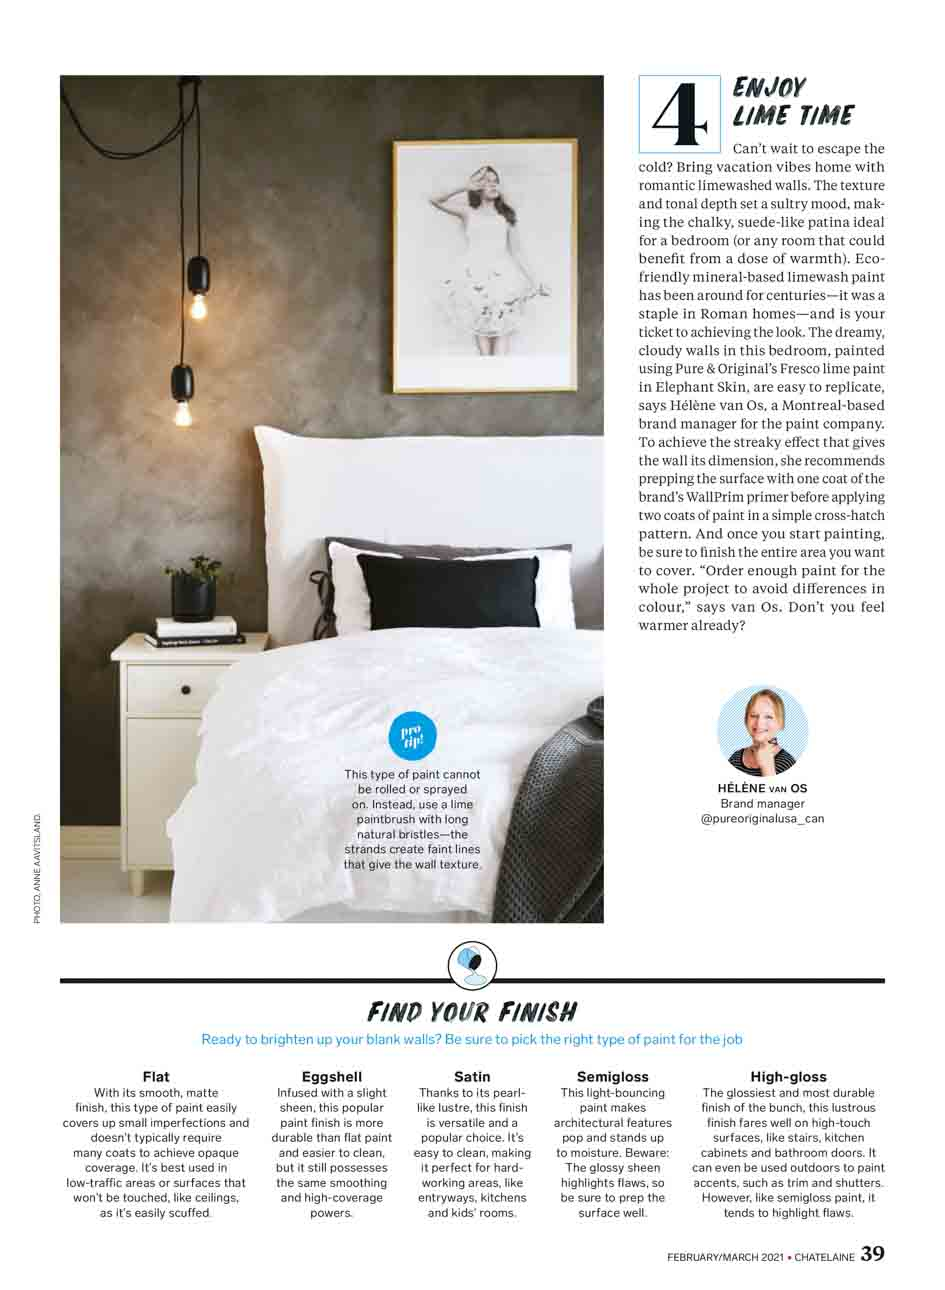 Publication Chatelaine magazine USA/CAN feb/march 2021